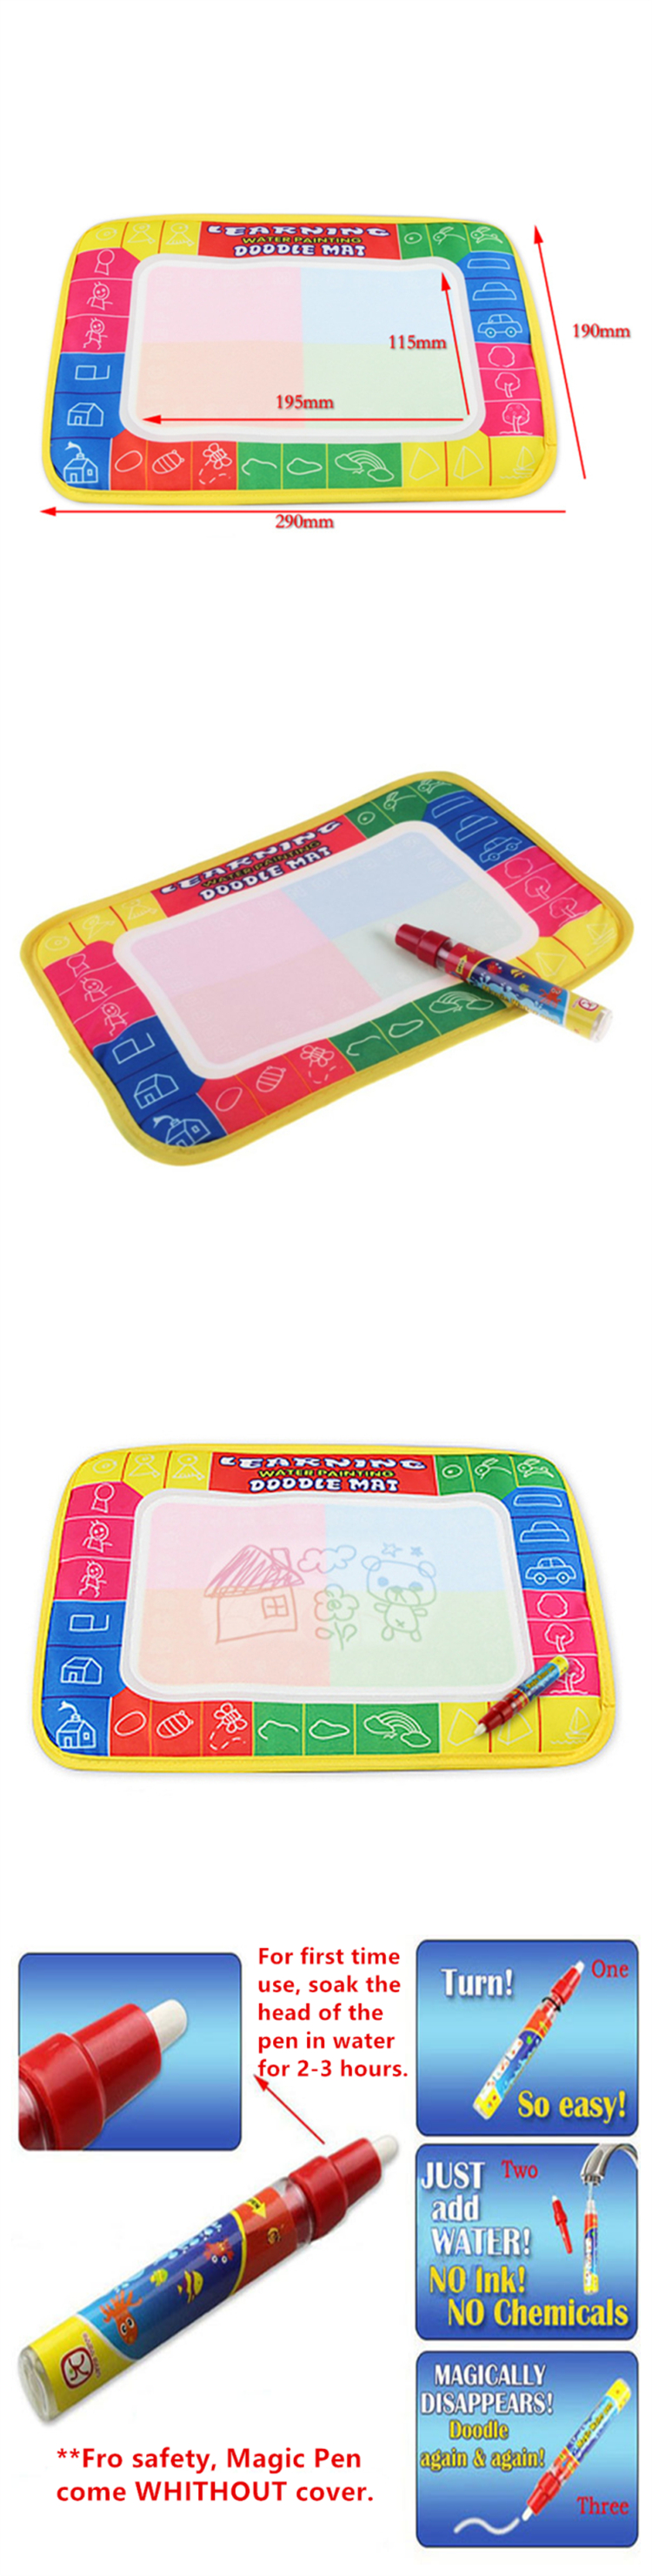 Little B House Water Drawing Painting Writing Magic Pen Doodle Mat Toy Early Learning 29X19cm -BT36-S